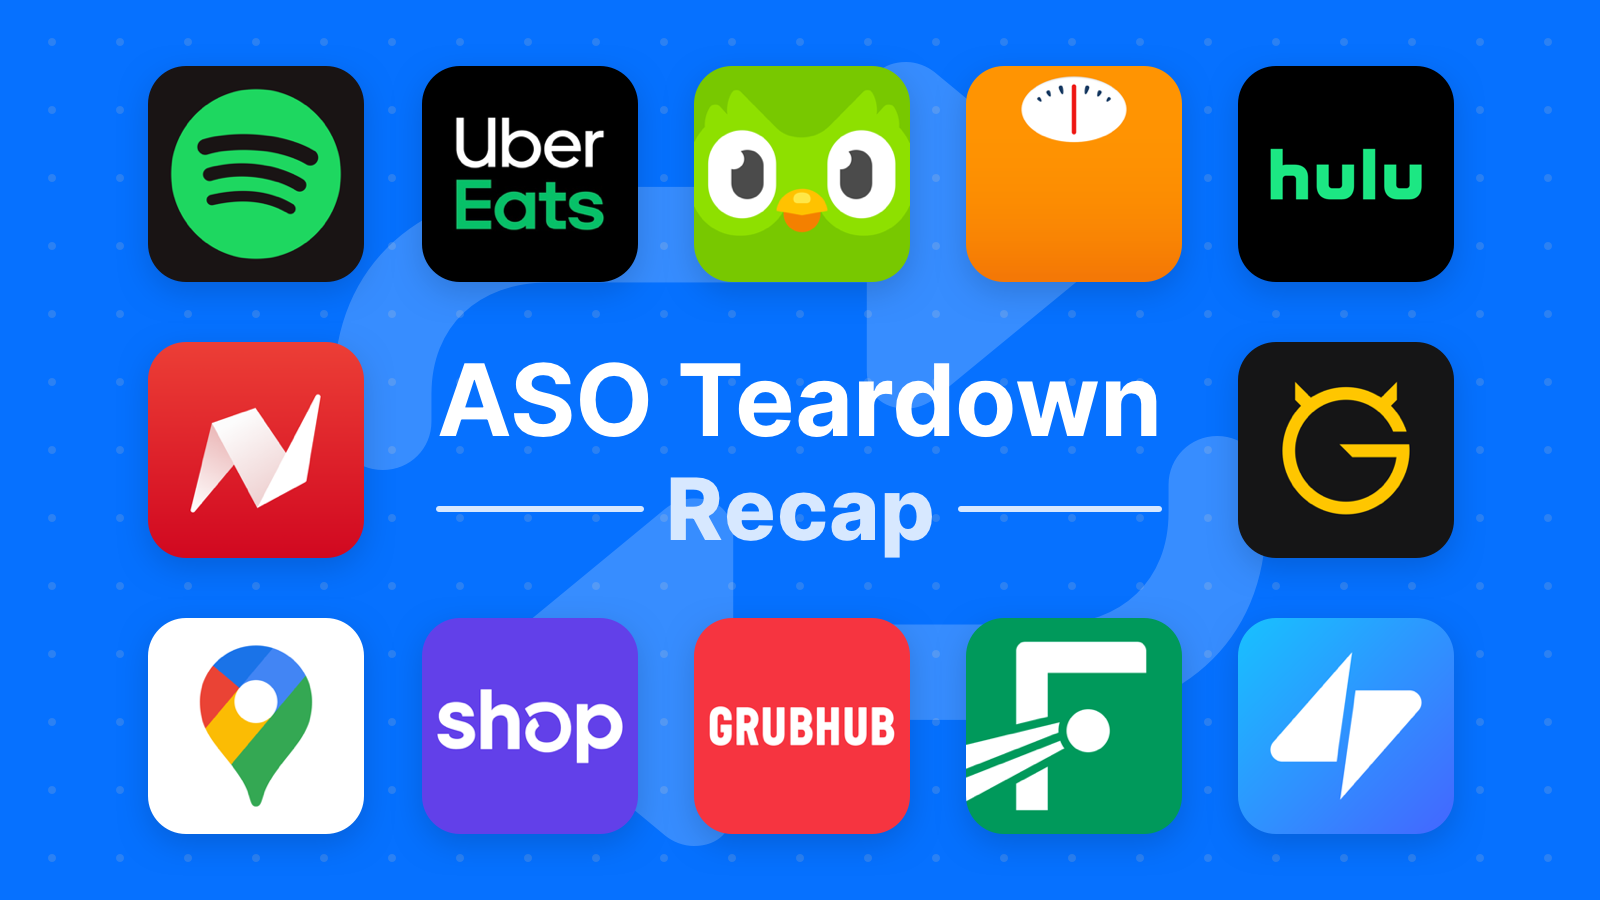 ASO Teardown: Lessons Learned from Digging into the ASO Strategy of 12 Popular Apps